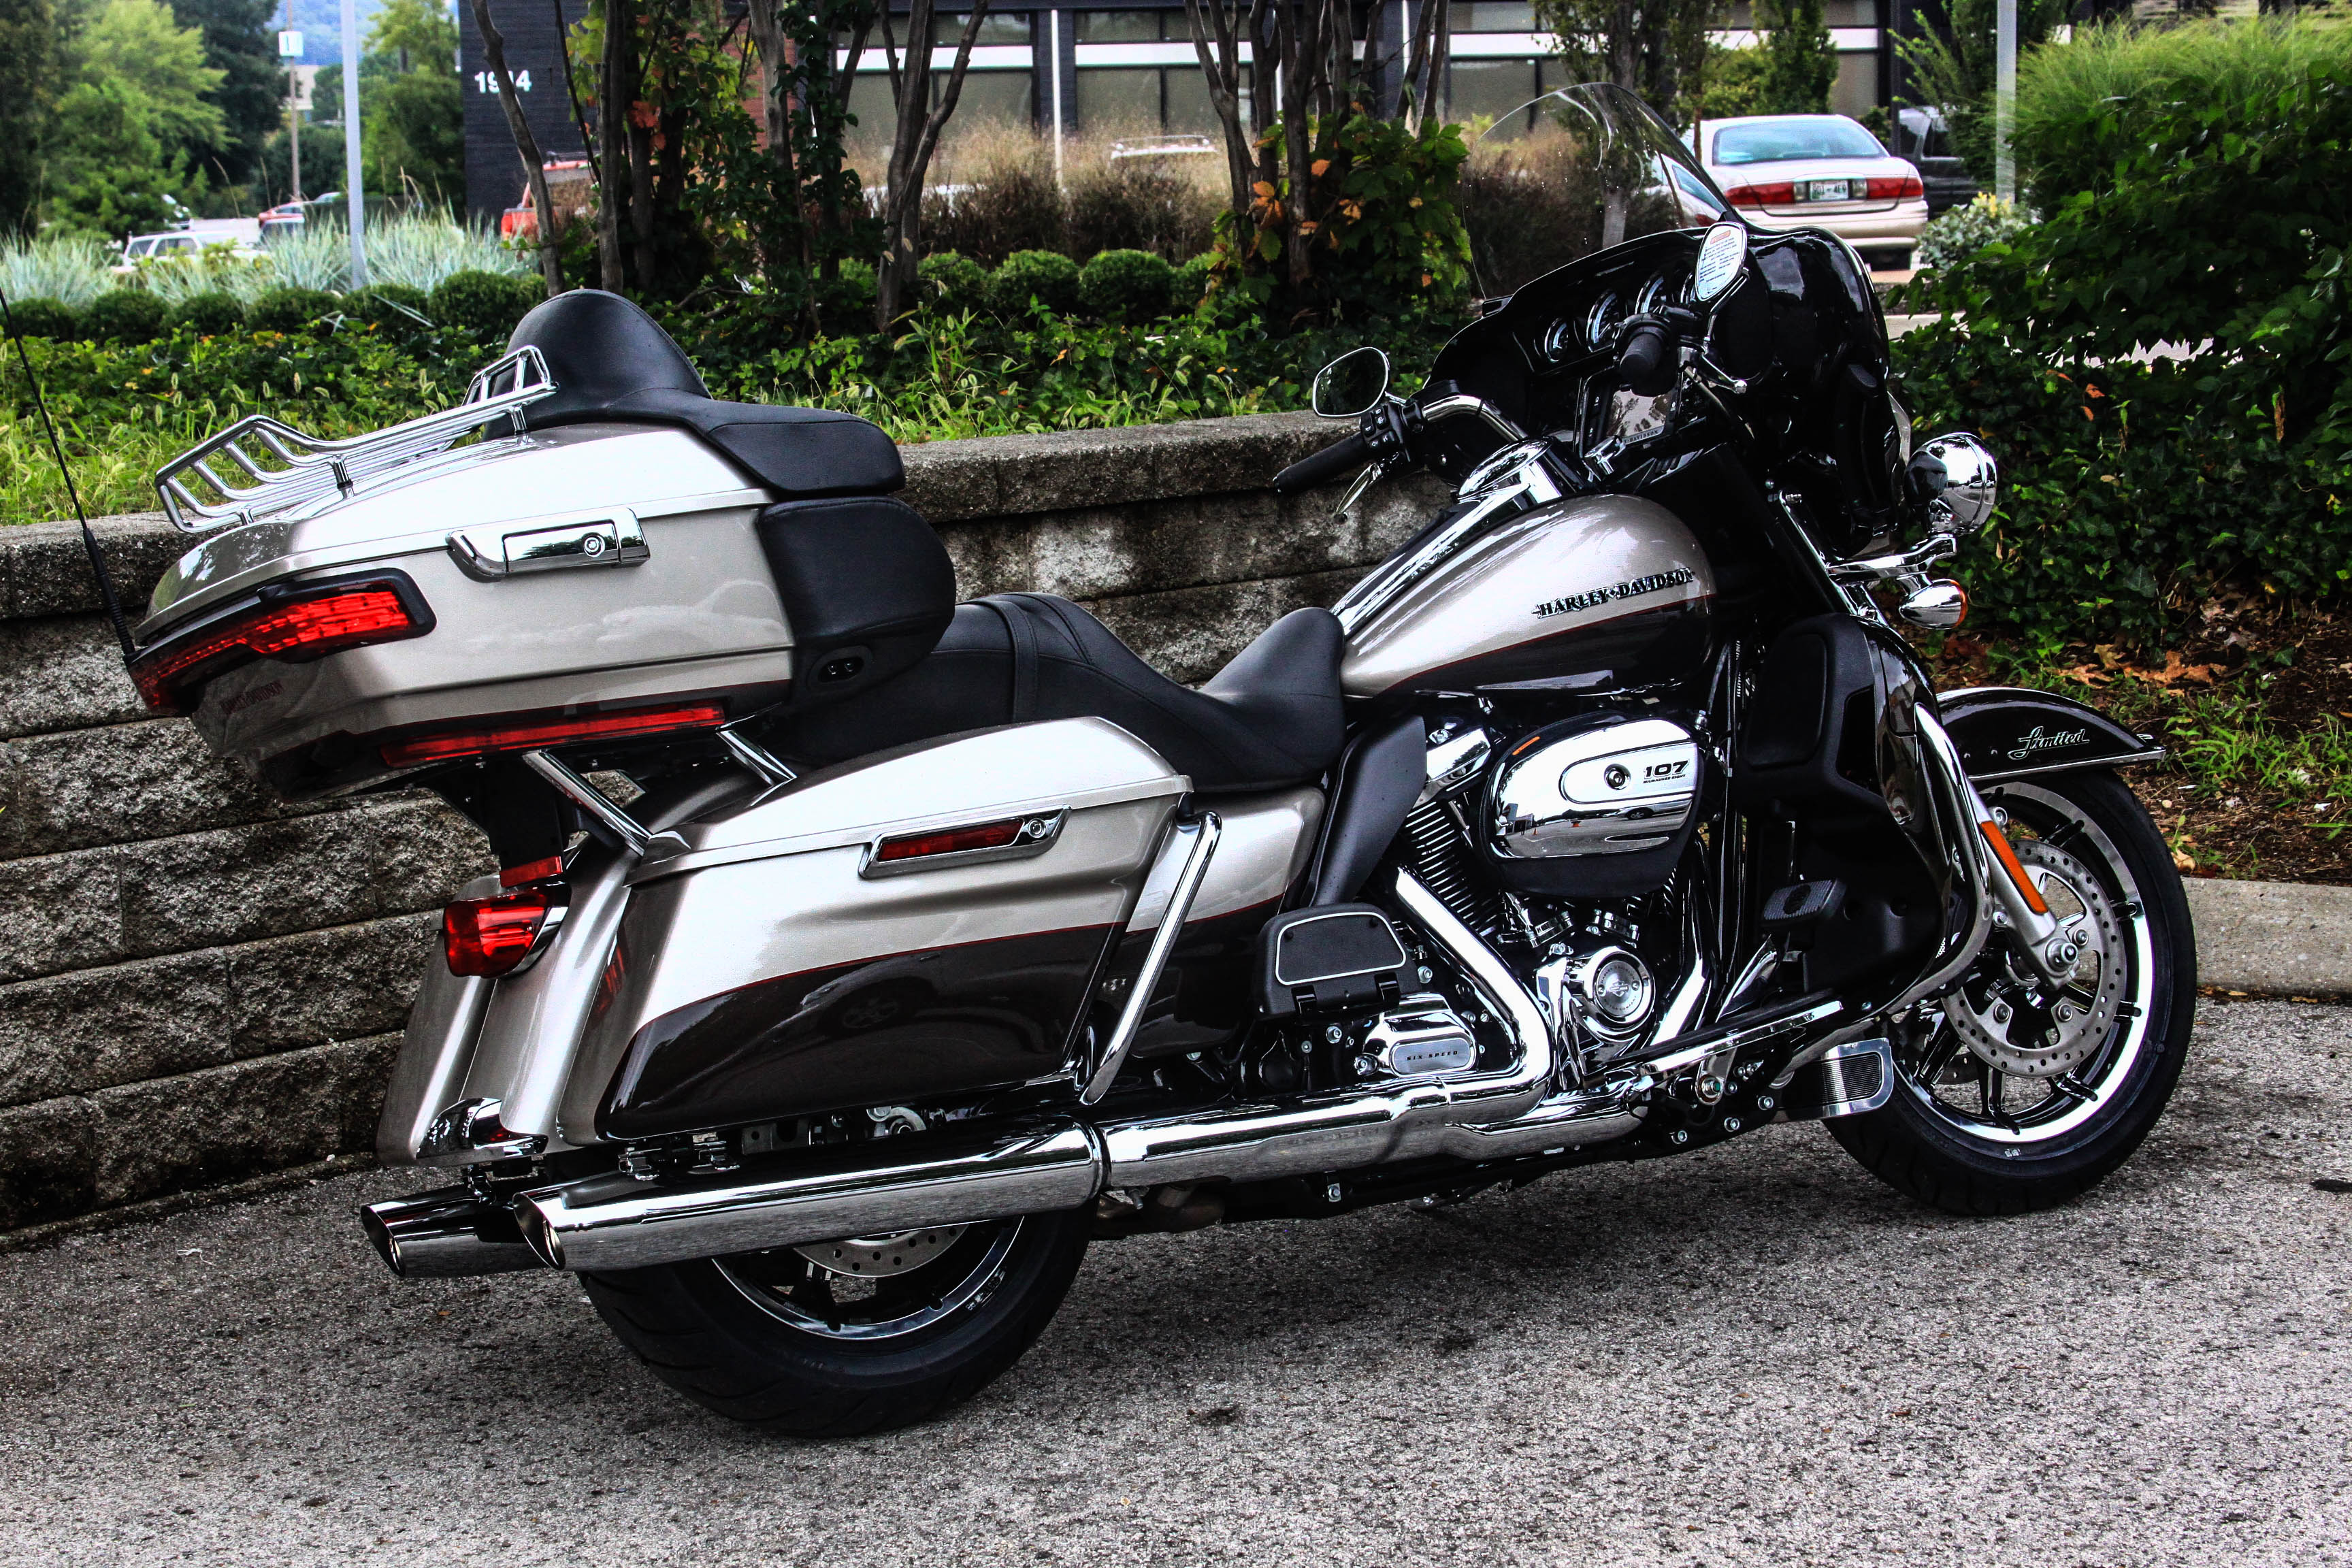 New 2018 Harley-Davidson Touring Electra Glide Ultra Limited